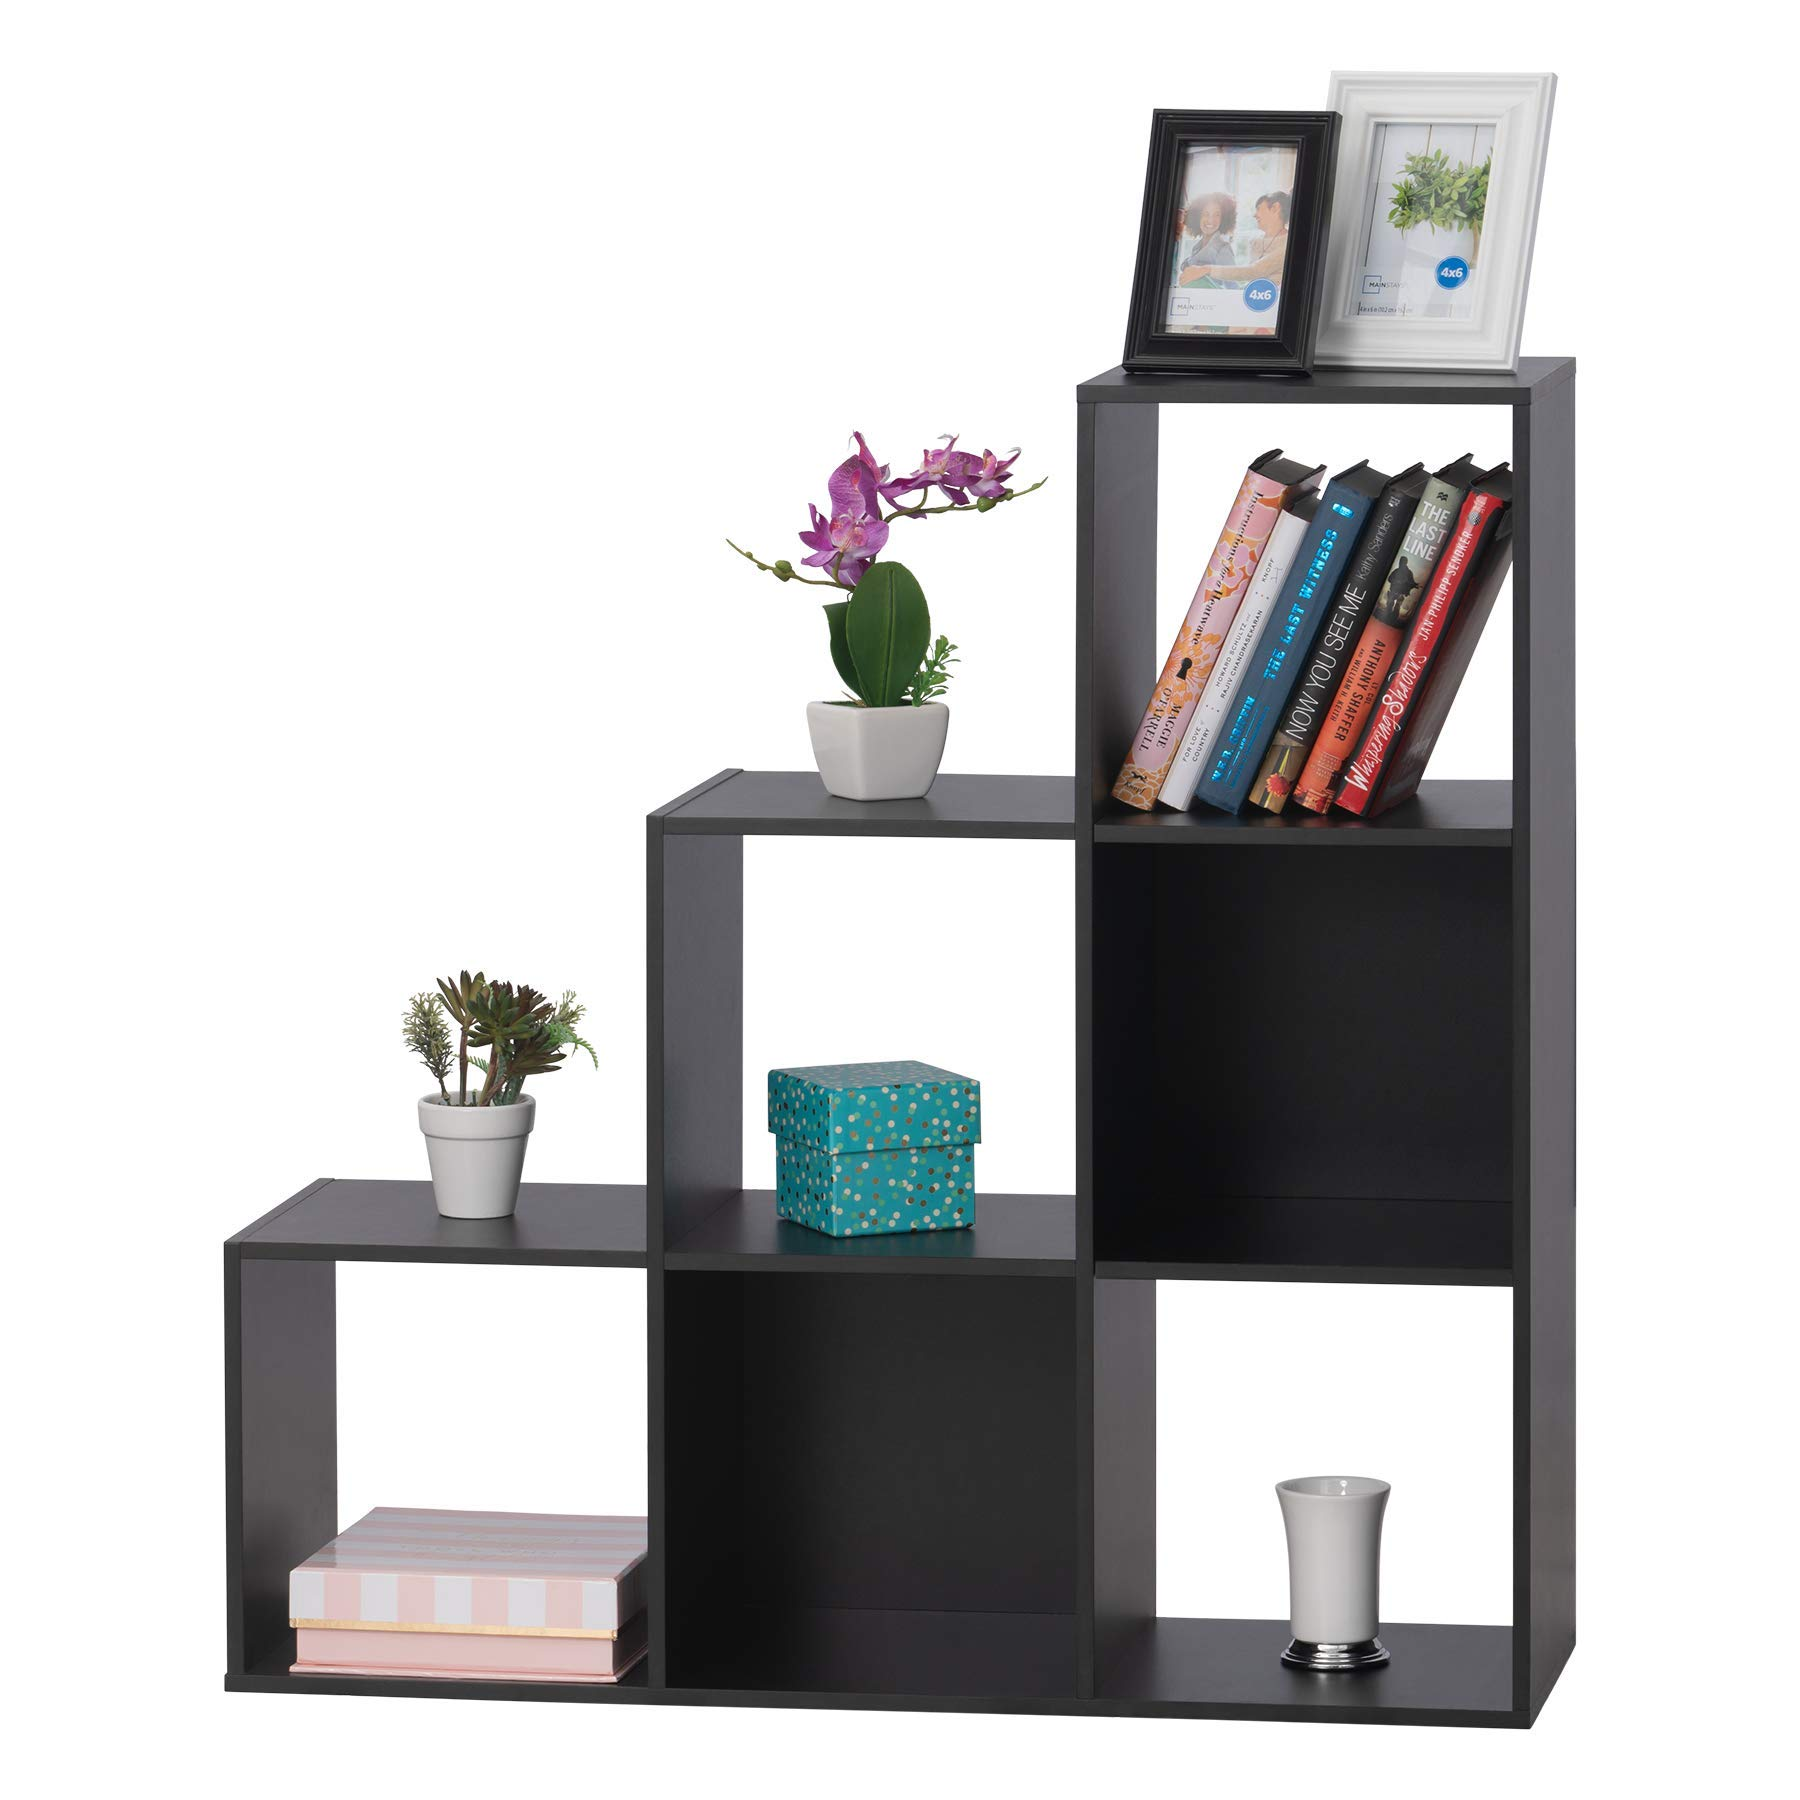 Fineboard FB-BC07-BK 6 Cube Bookshelf Storage Cabinet Organizer Bookcase for Home Office, Black by Fineboard